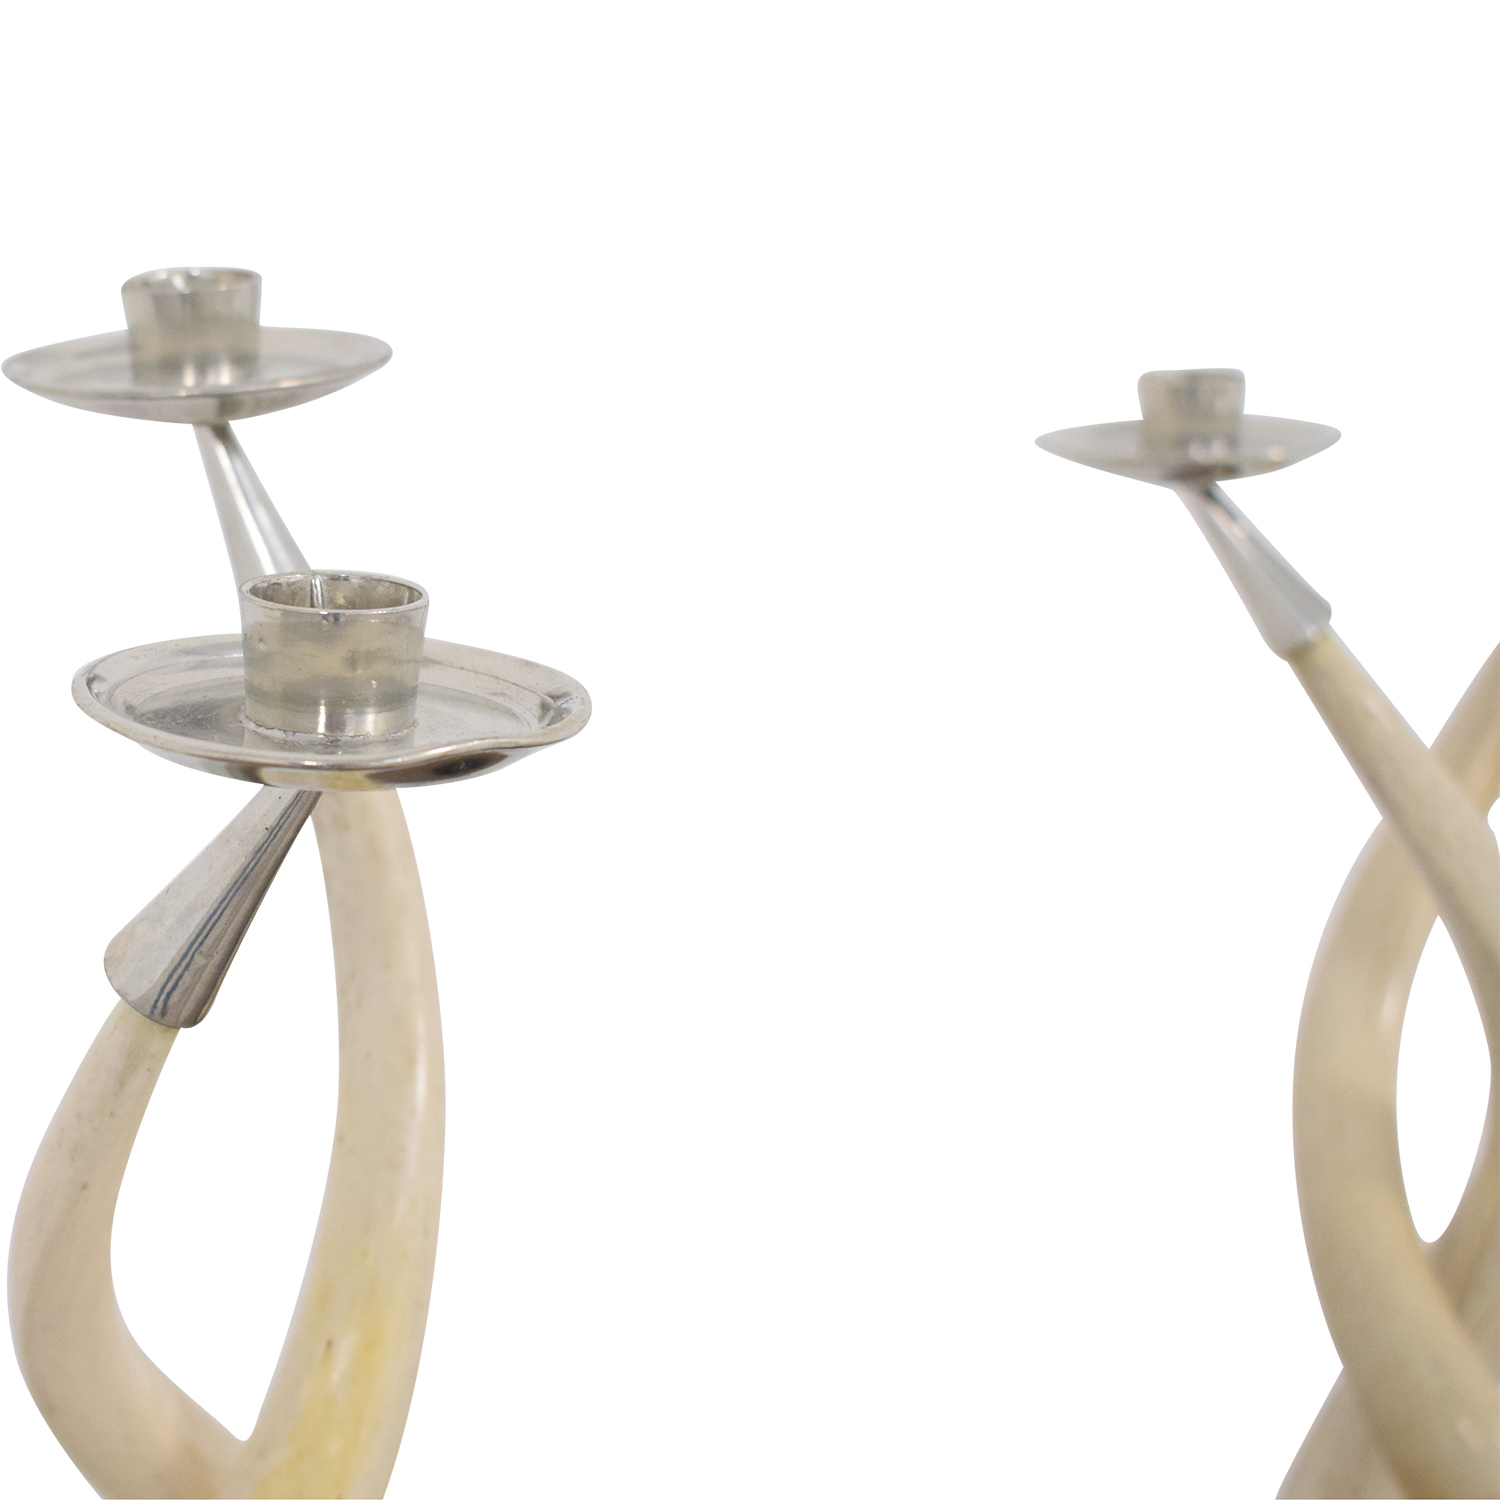 Twisted Horn Candlesticks